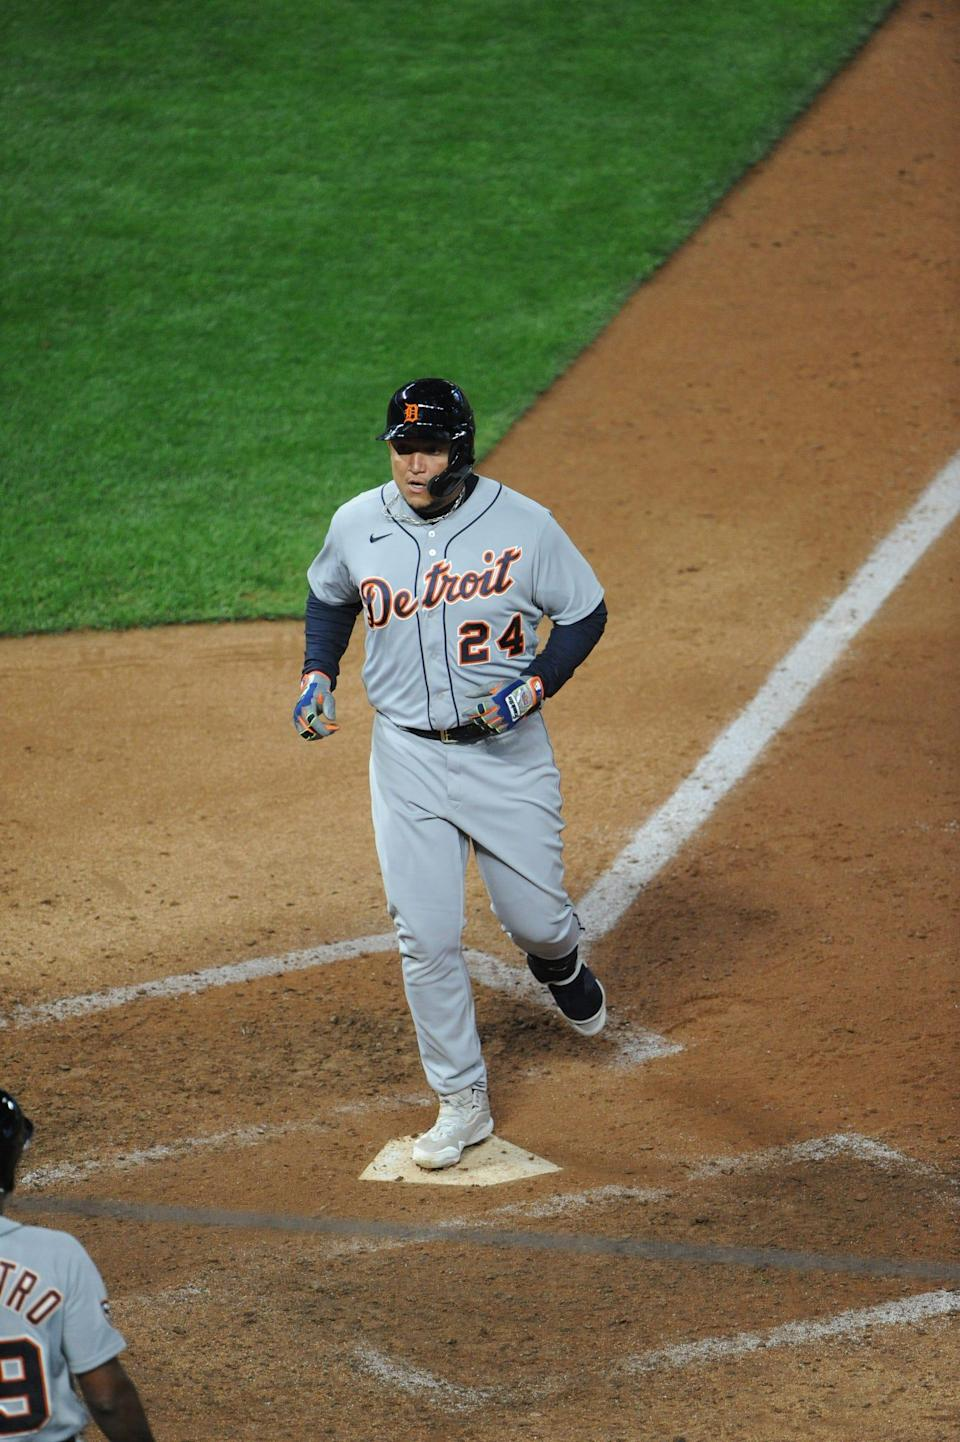 Detroit Tigers designated hitter Miguel Cabrera (24) hits a two-run homer during the ninth inning against the Minnesota Twins on Sept. 23, 2020, at Target Field in Minneapolis.